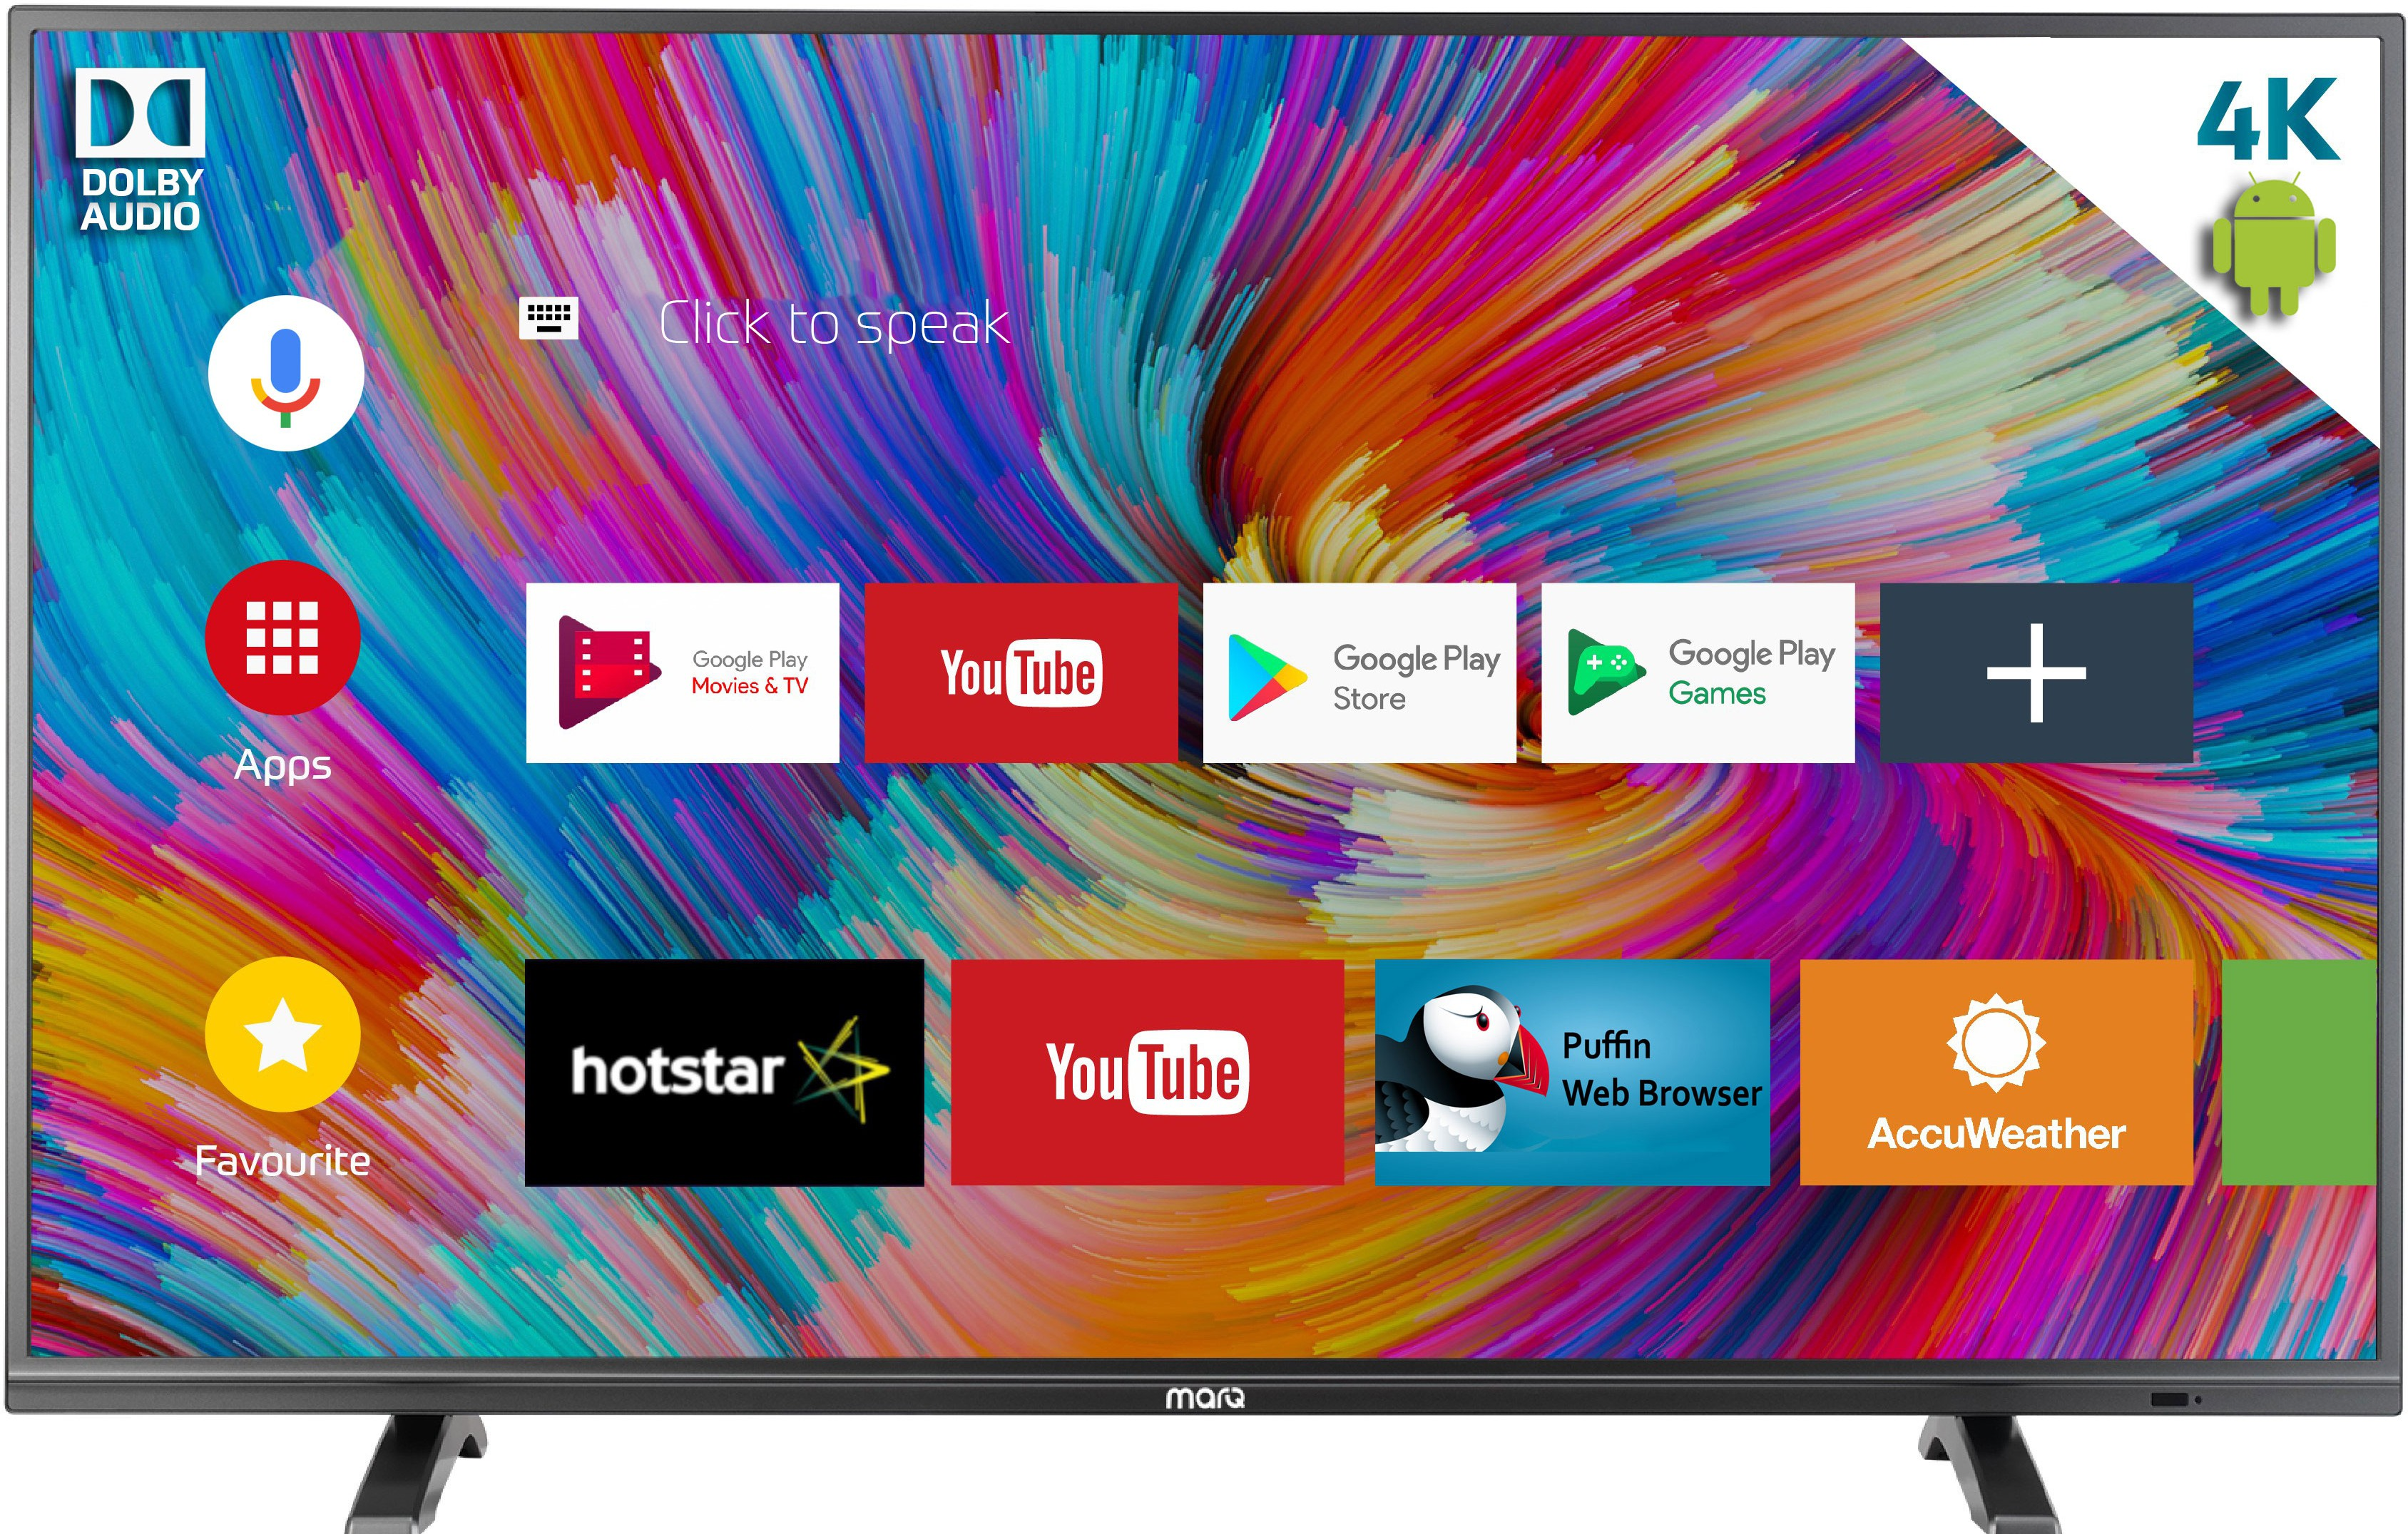 MarQ by Flipkart Dolby Certified Android (43 inch) Ultra HD (4K) Smart LED TV Image